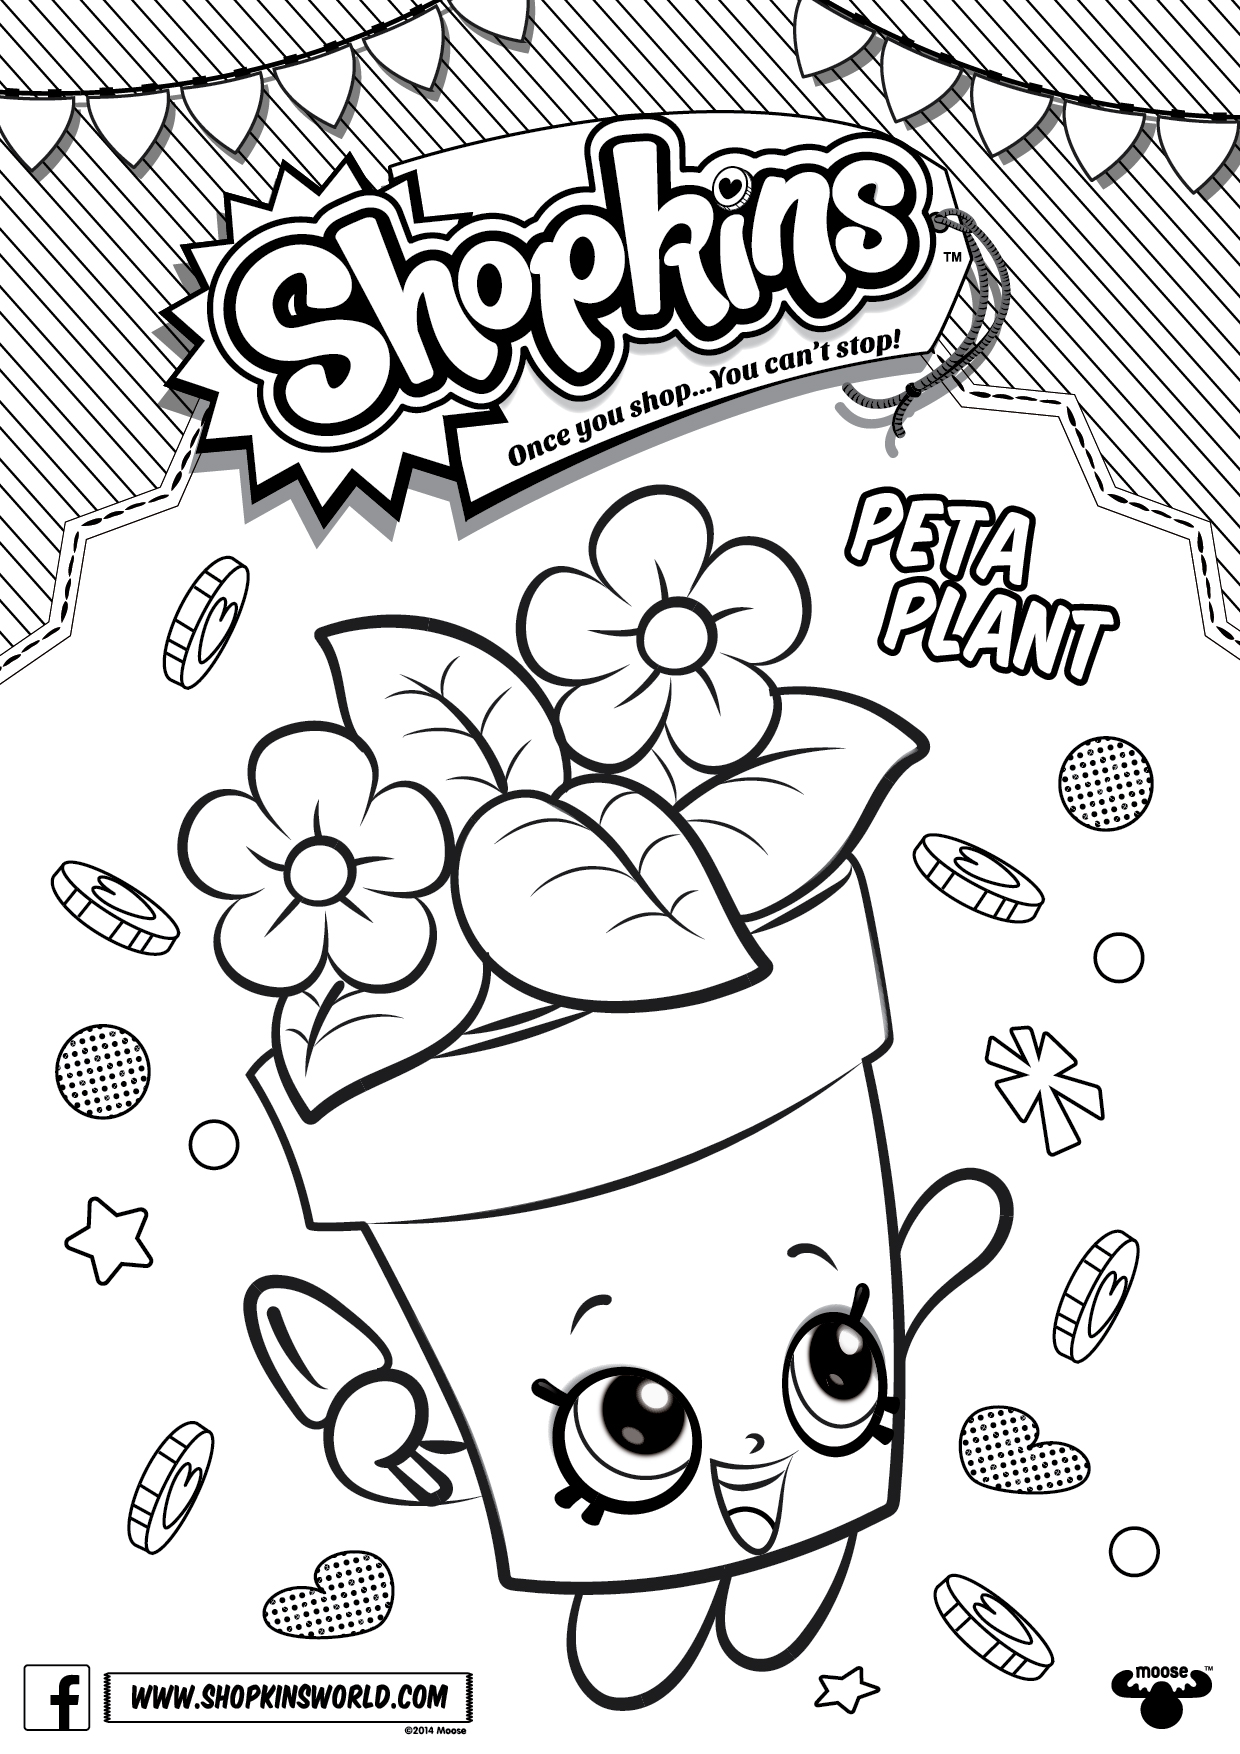 Shopkins Drawing Pages at GetDrawings.com | Free for ...